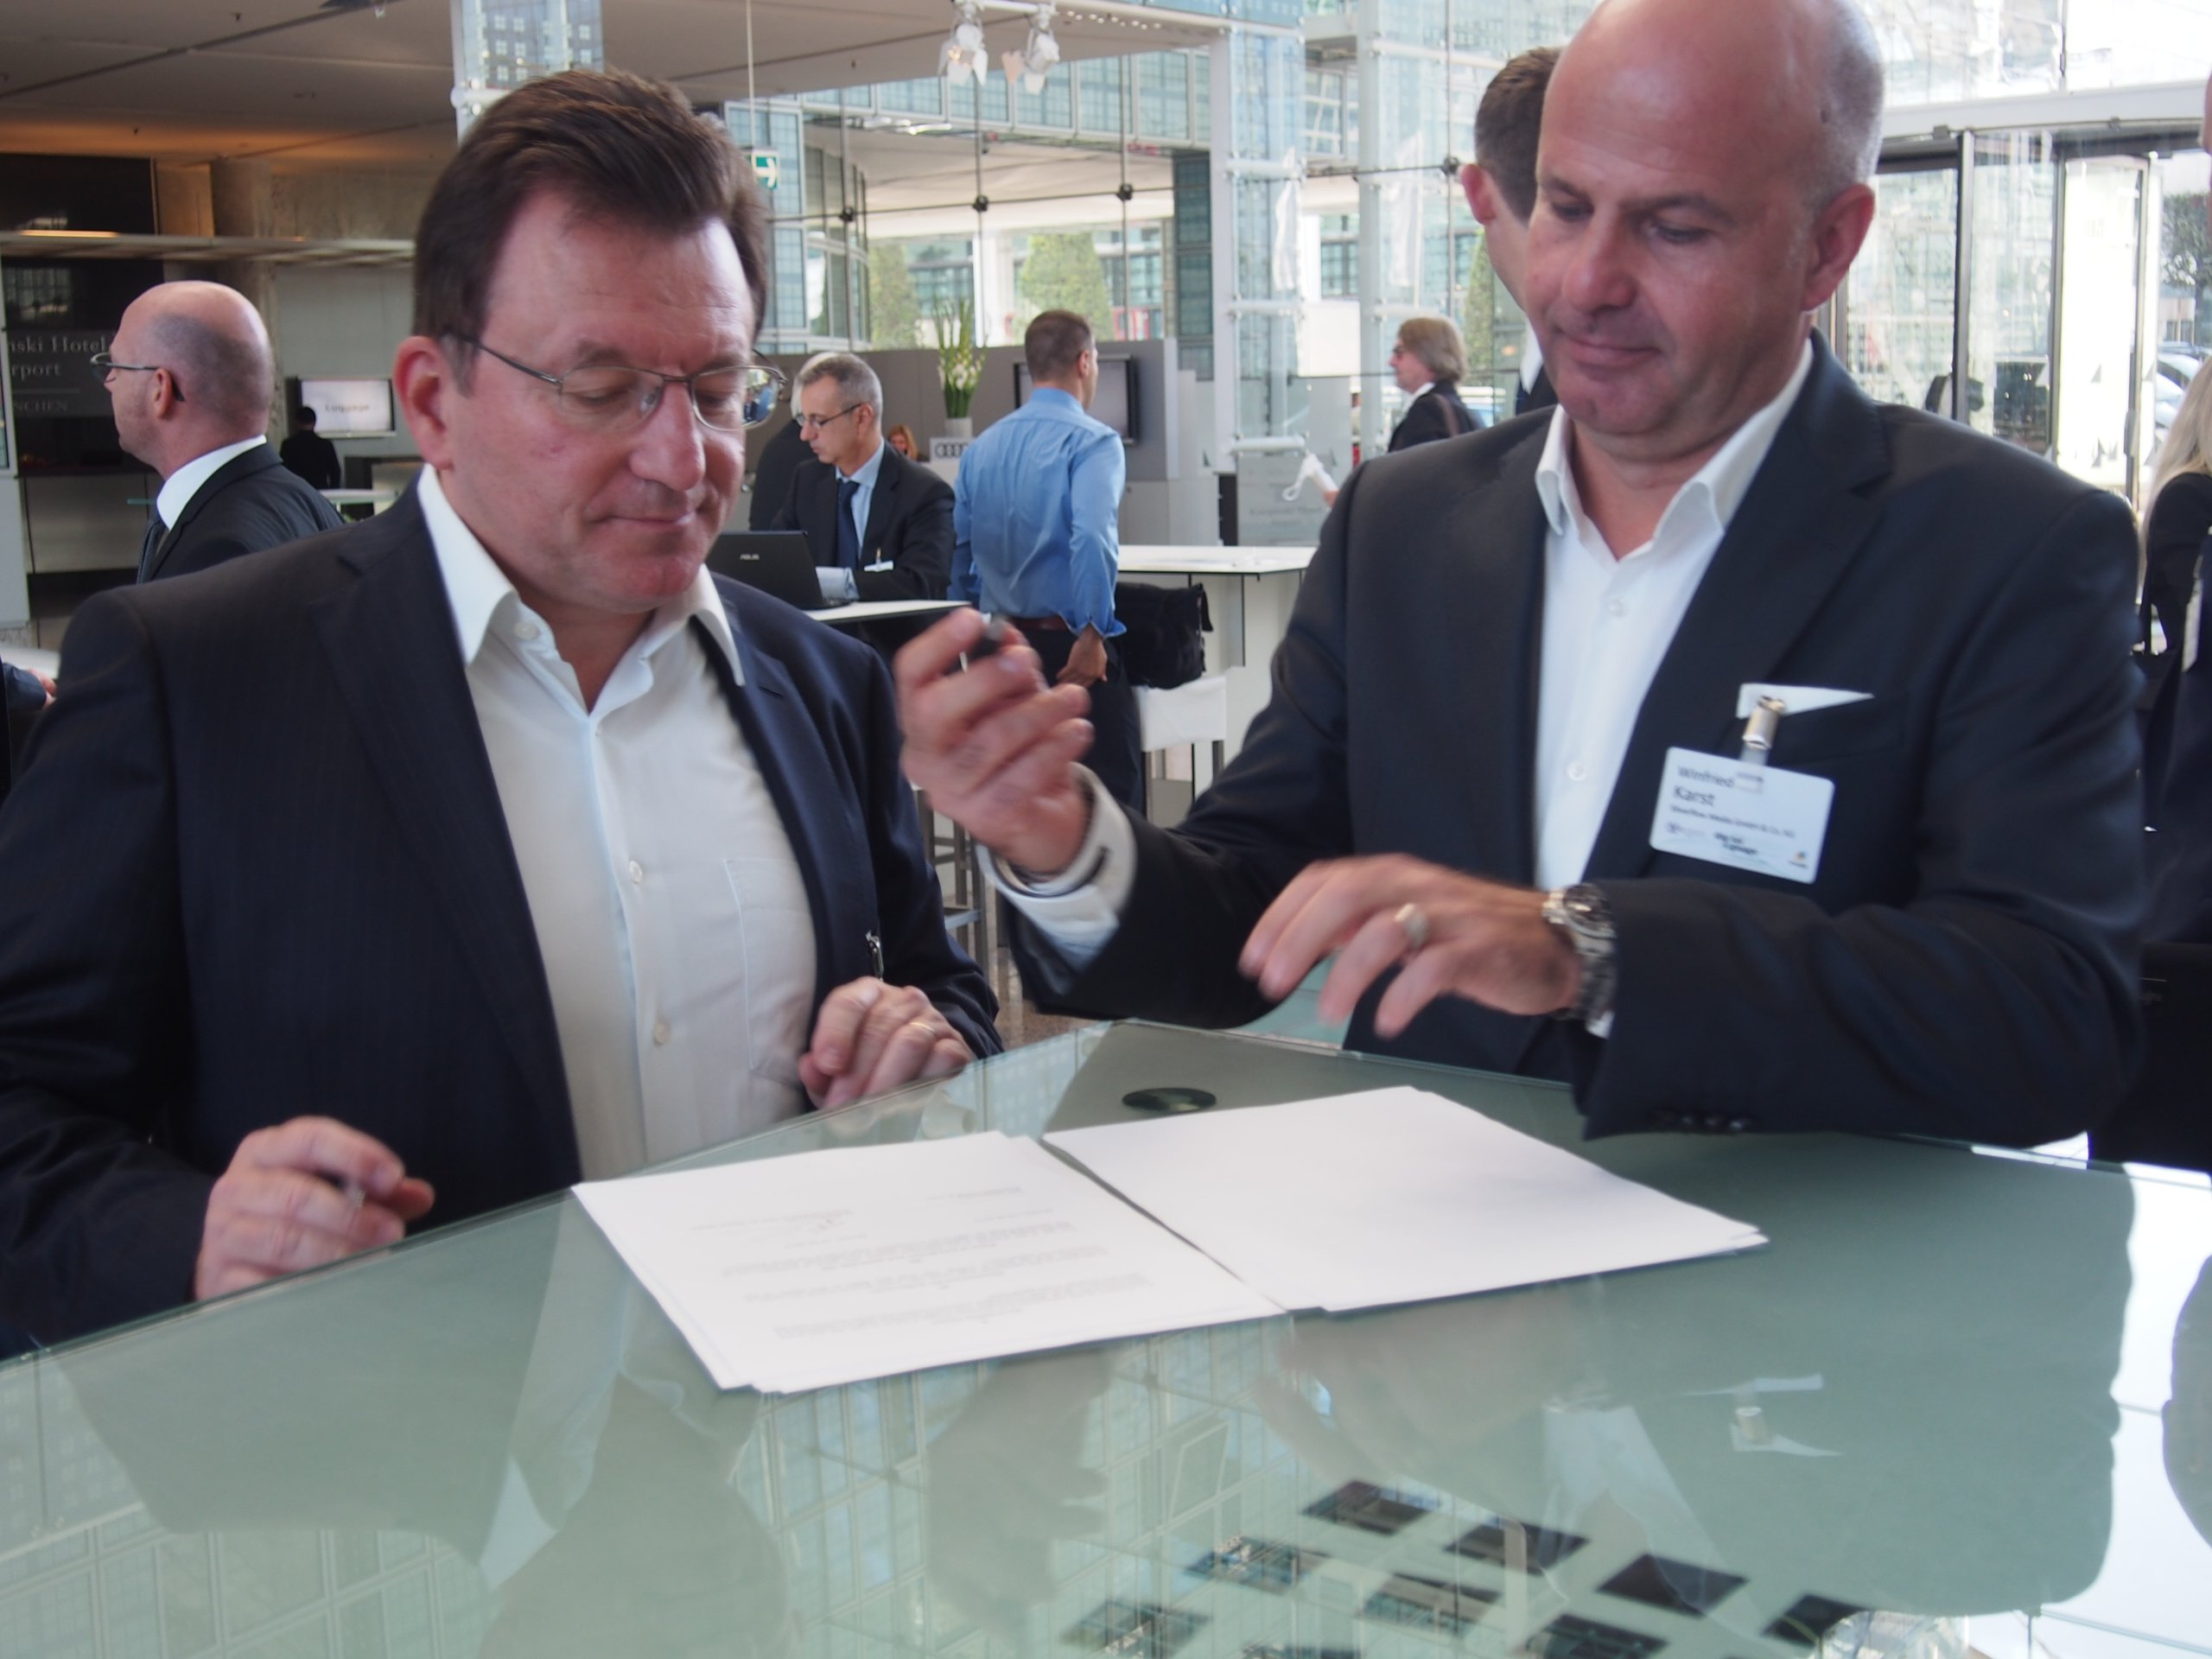 Michel Baronnier (Vice President of the Club de Digital Media) and Winnie Karst (Vice President of OVAB Europe) sign the cooperation contract (Image: invidis)